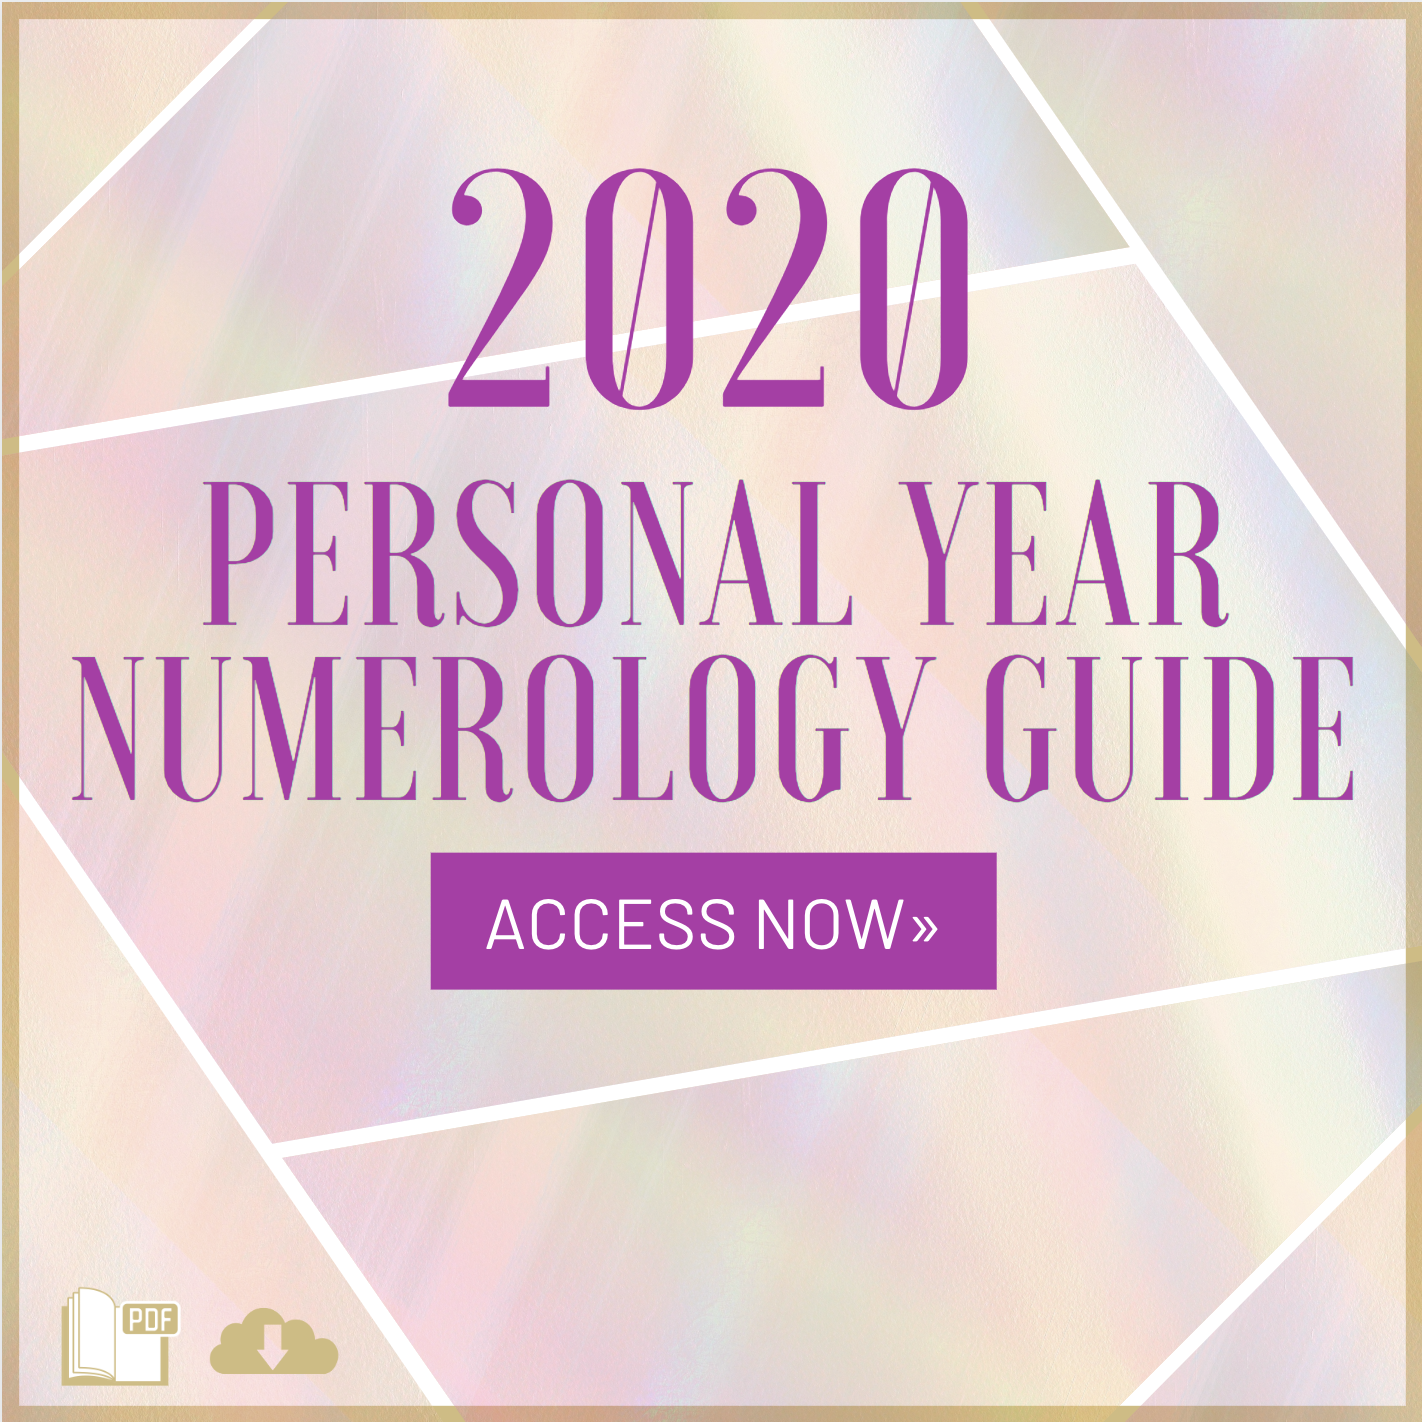 Flow through 2020 with ease using my FREE 2020 Personal Year Numerology Guide! Download it instantly and start preparing for what is going to be a life-changing year! | Kari Samuels #karisamuels #numerology #2020 #newyear #numerologyguide #personalyearnumerology